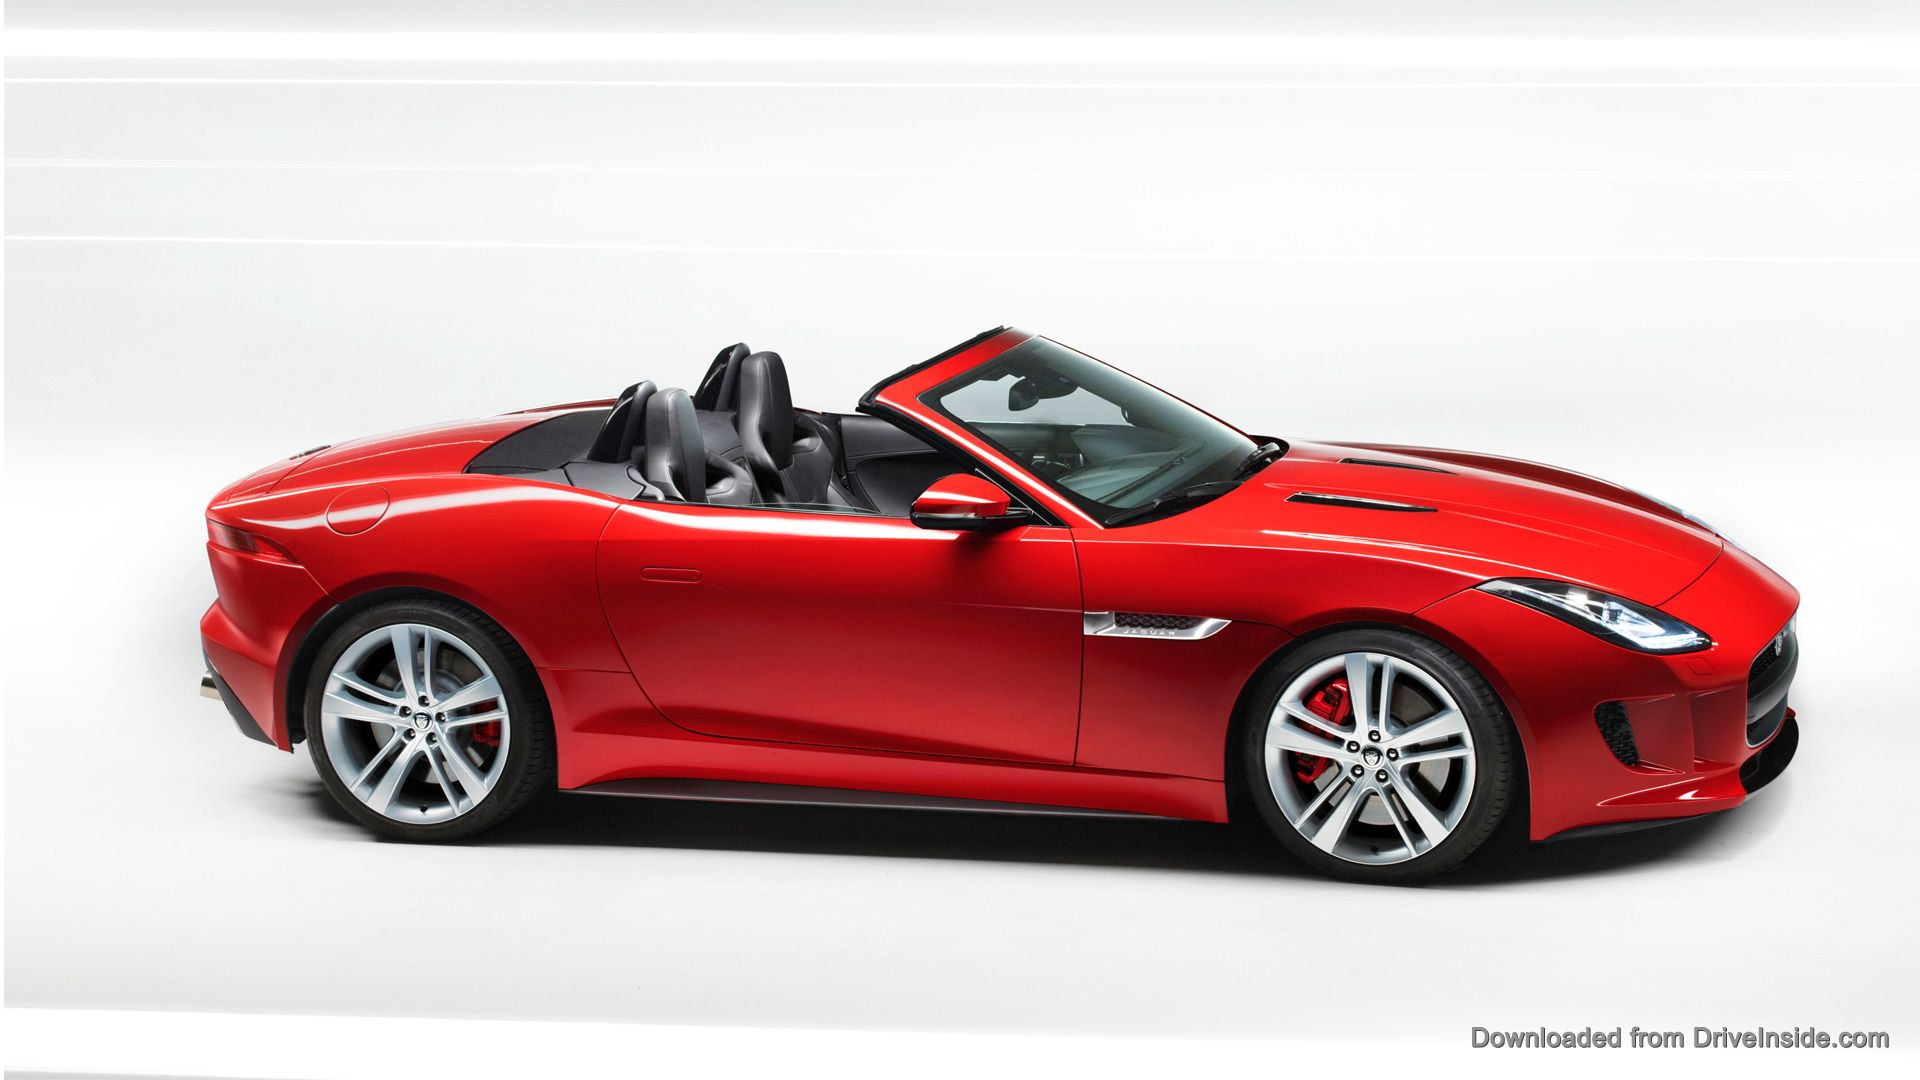 Marvelous Image For Jaguar F Type Sports Car At Rs 1.37 Jag0076